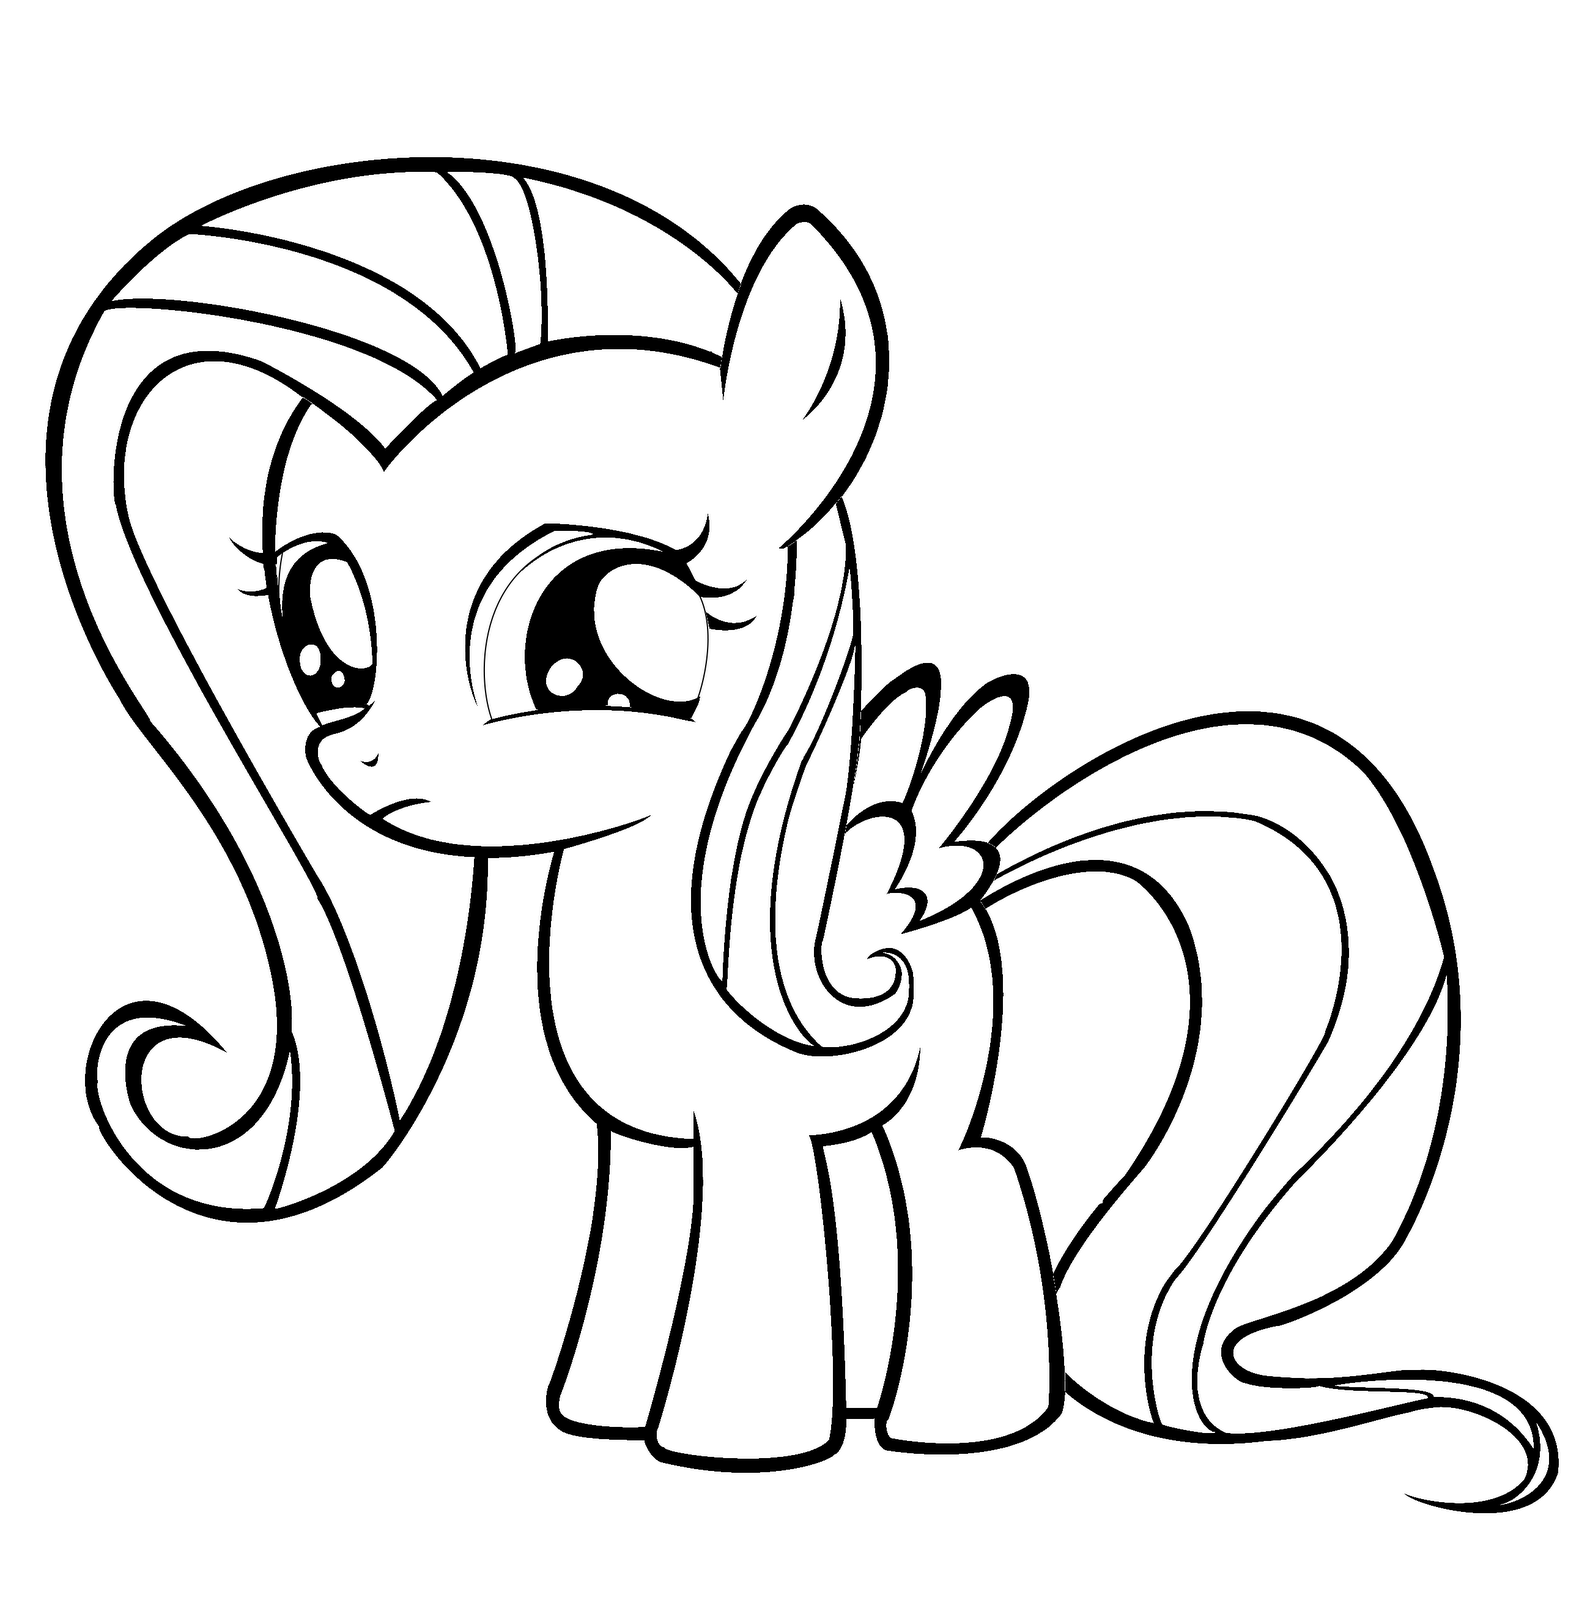 Baby Fluttershy Coloring Pages My Little Pony Coloring Animal Coloring Pages Coloring Pages